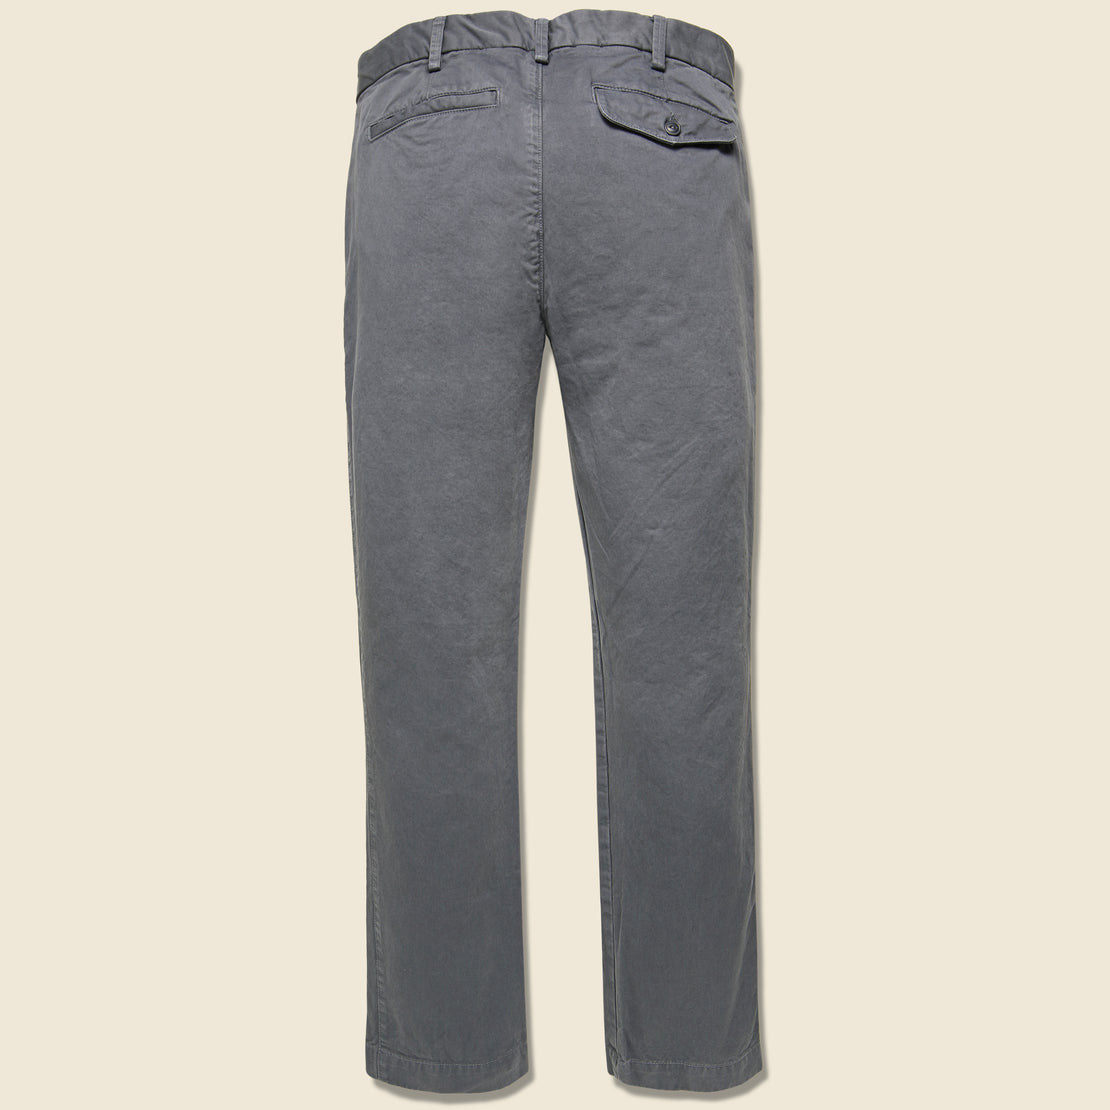 Bulldog Twill Trouser - Metal